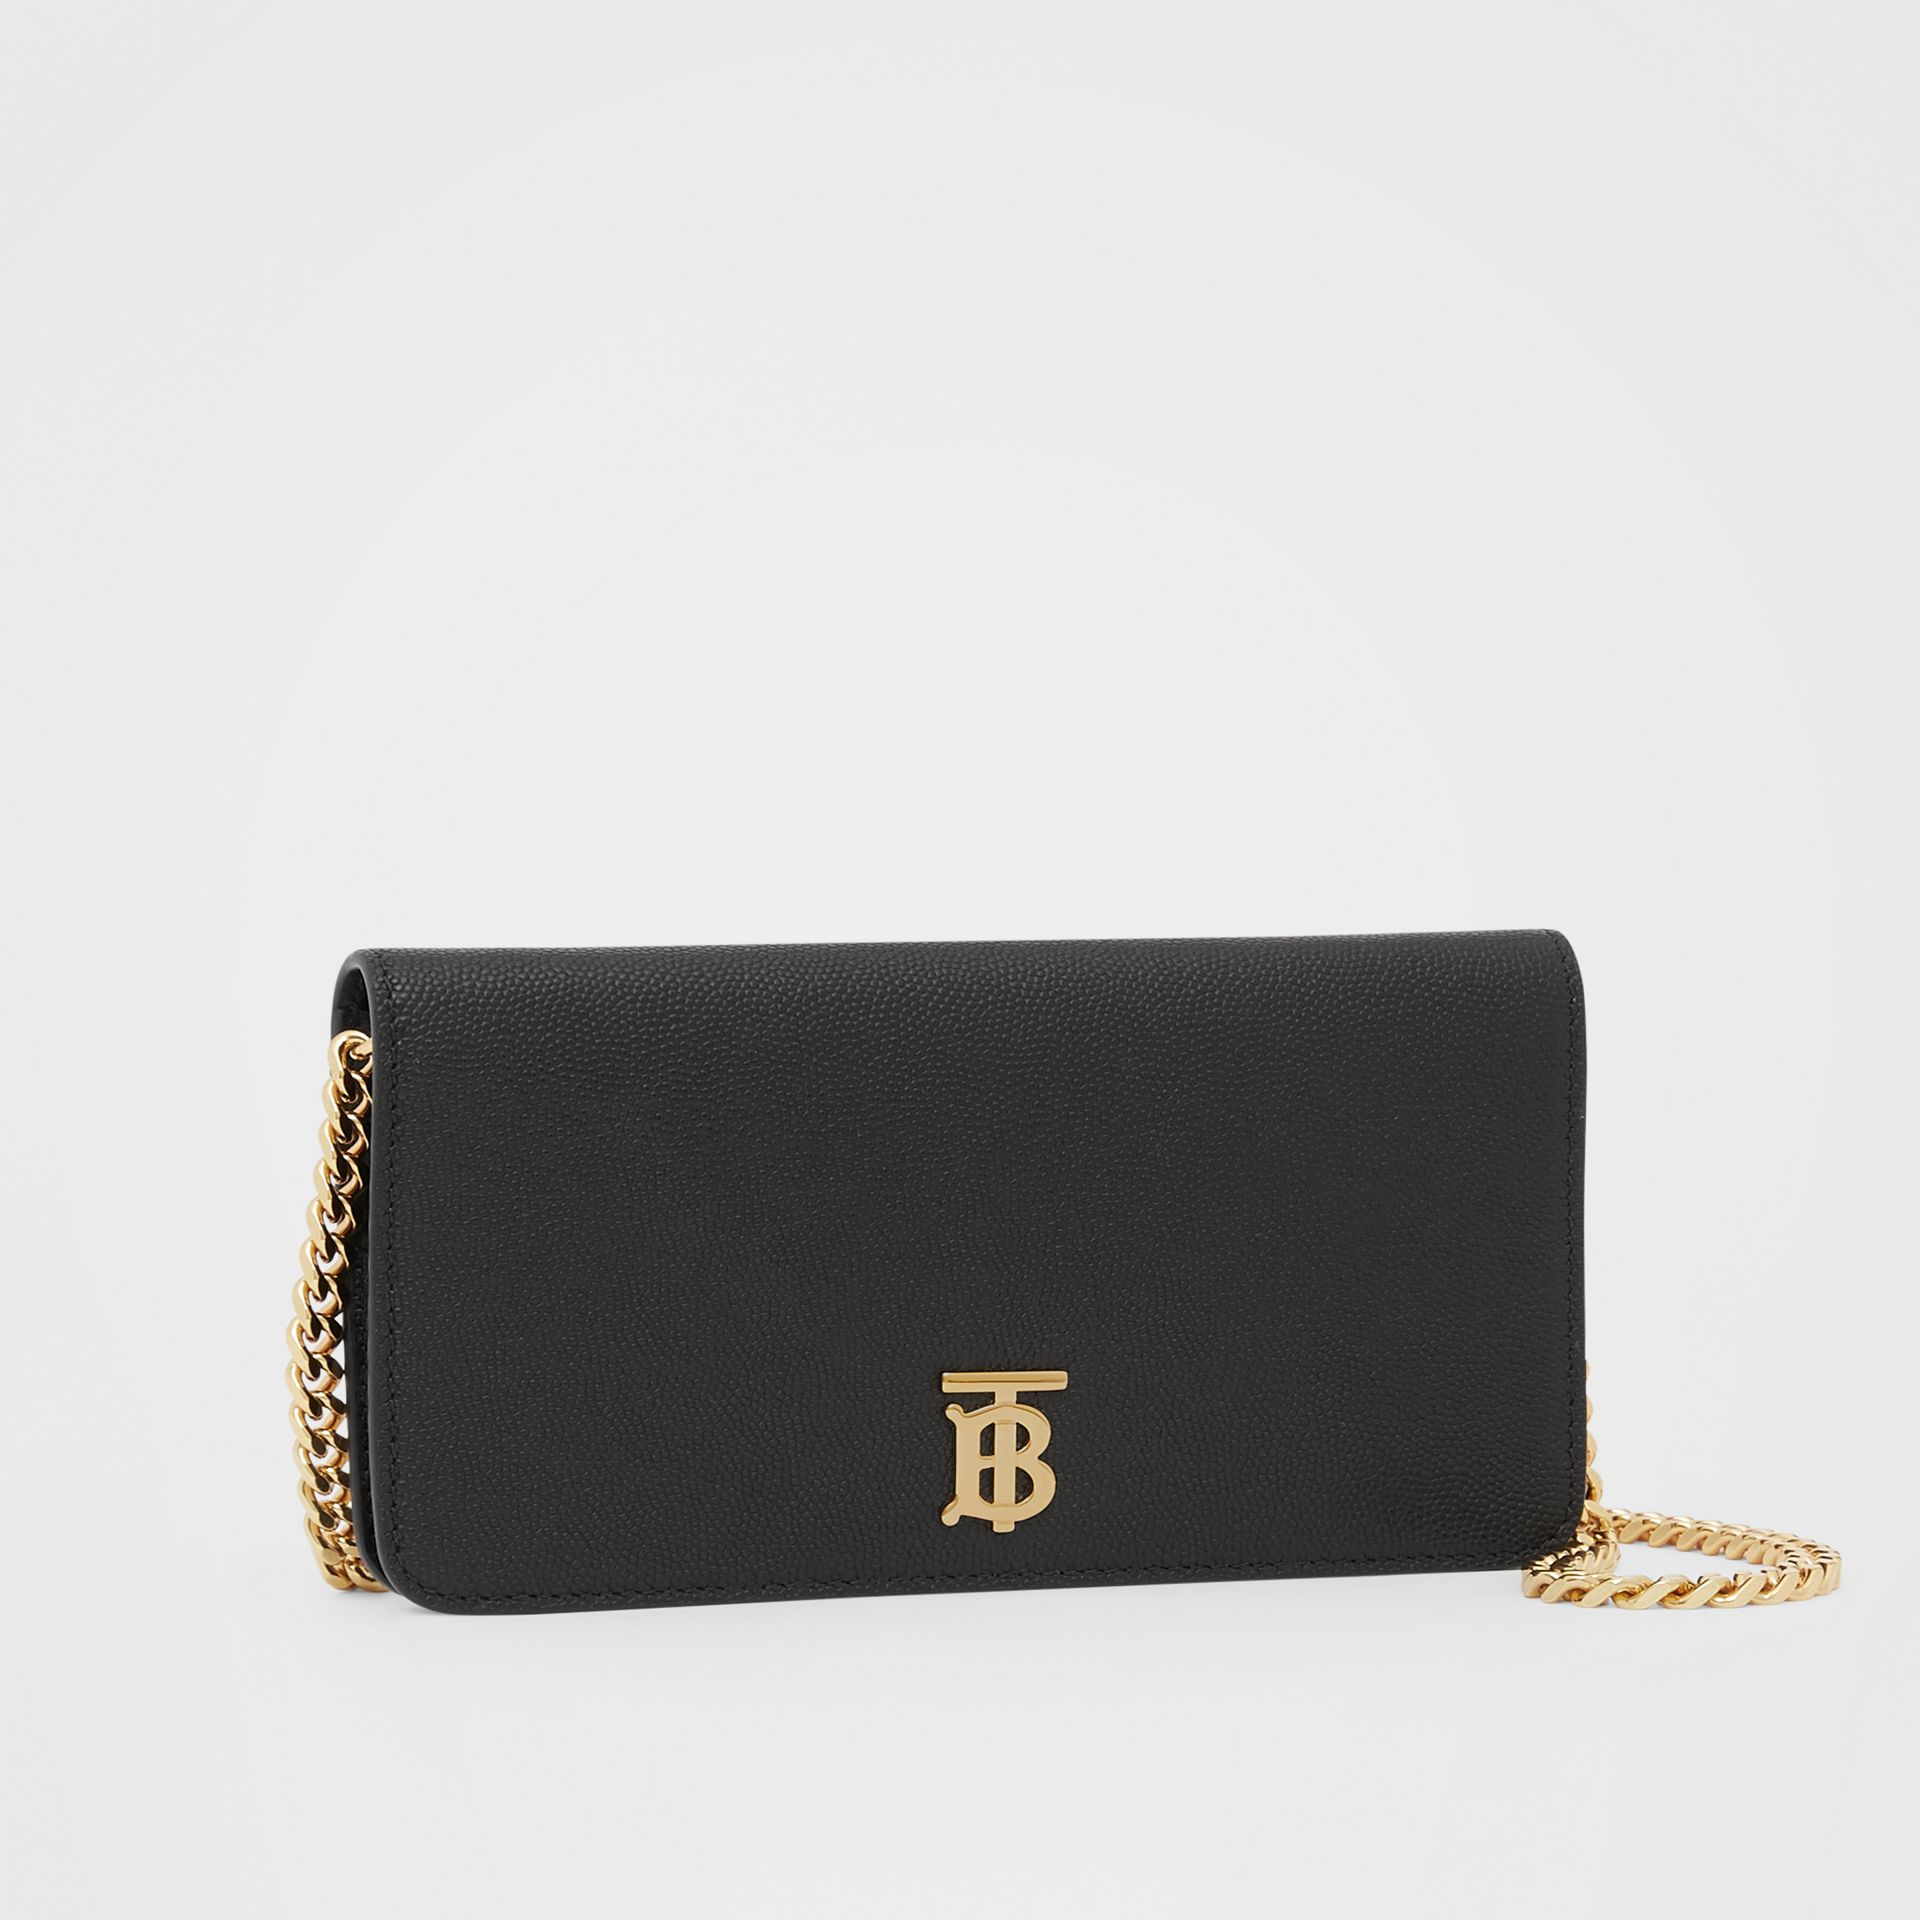 Grainy Leather Phone Wallet with Strap in Black - Women | Burberry United States - gallery image 4